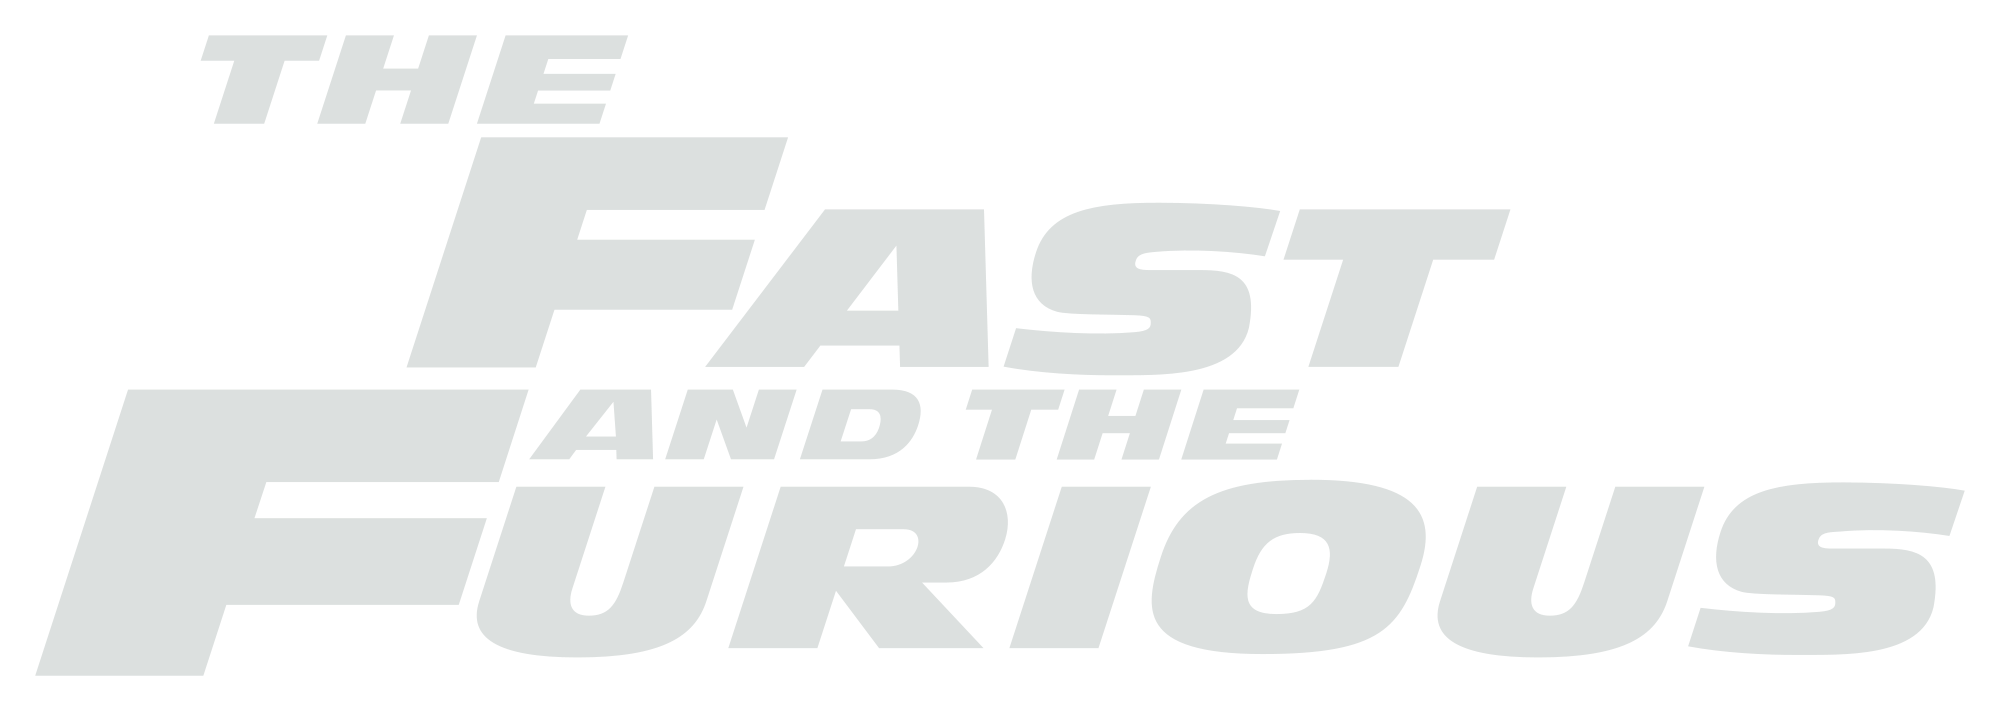 image the fast and the furious logo 2 png the fast and the rh fastandfurious wikia com All Fast and Furious Logo Fast and Furious Supra Logo